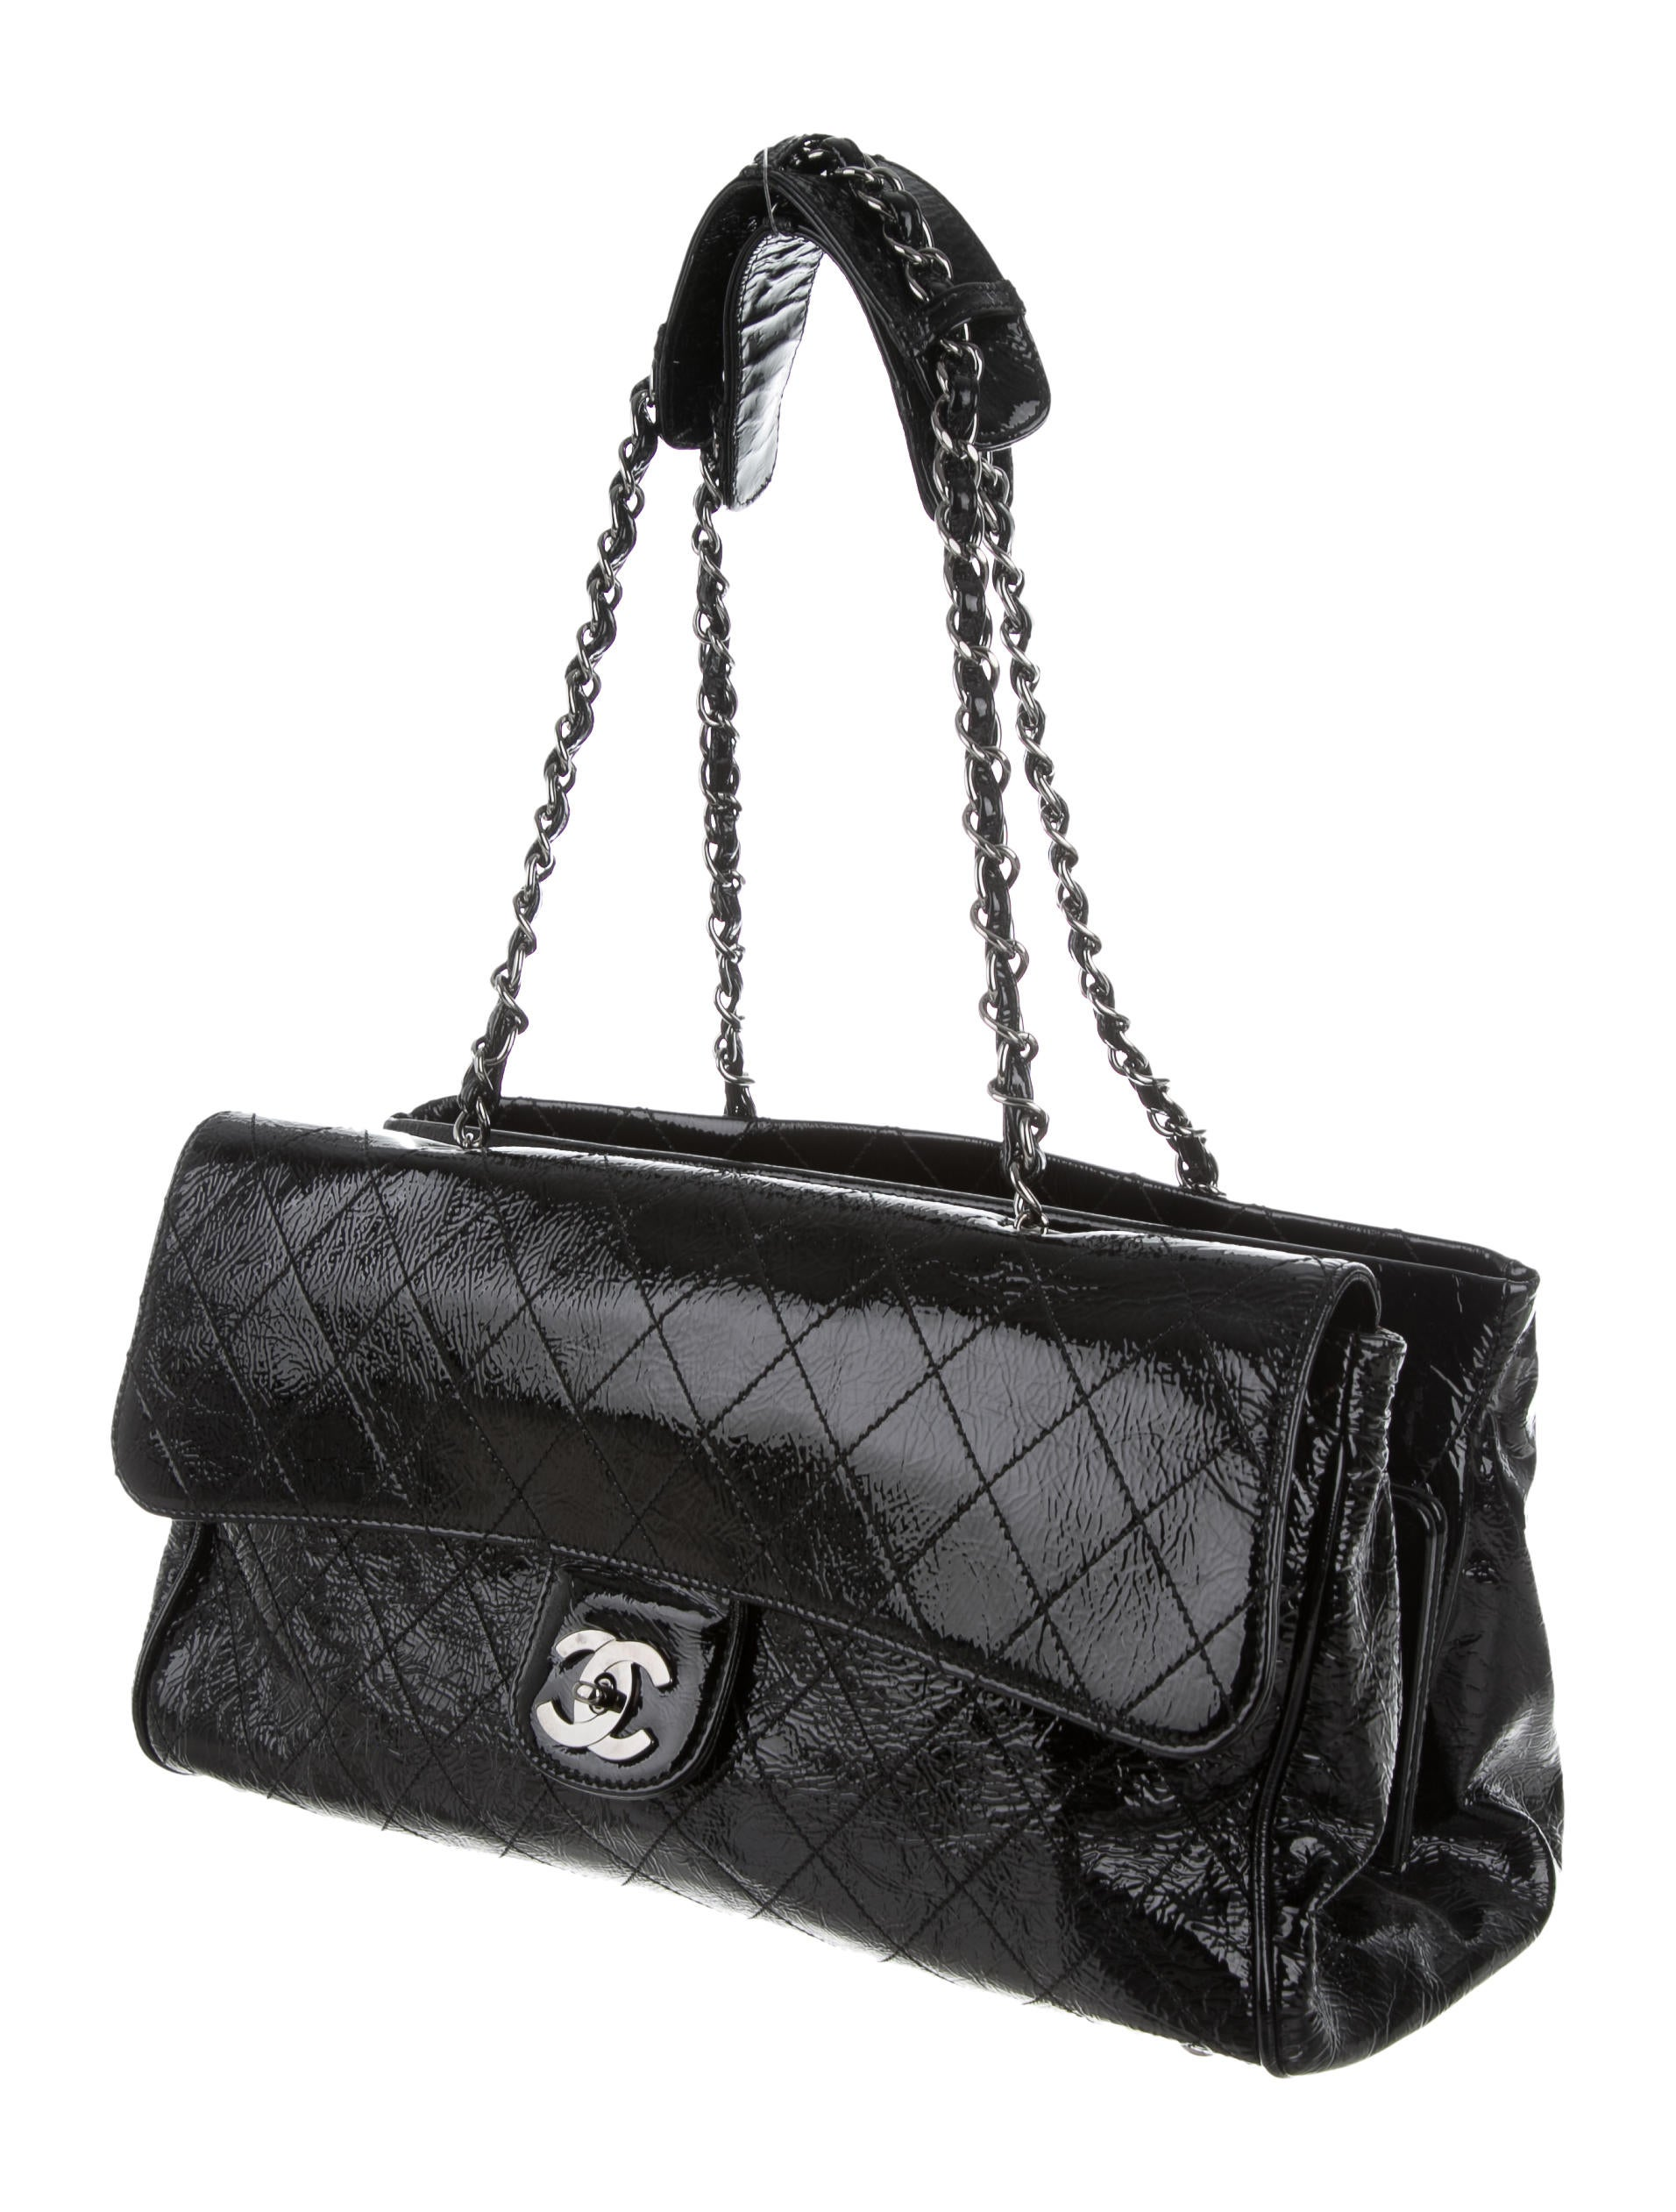 b0e18d096bb293 Chanel Patent Leather Flap Bag | Stanford Center for Opportunity ...